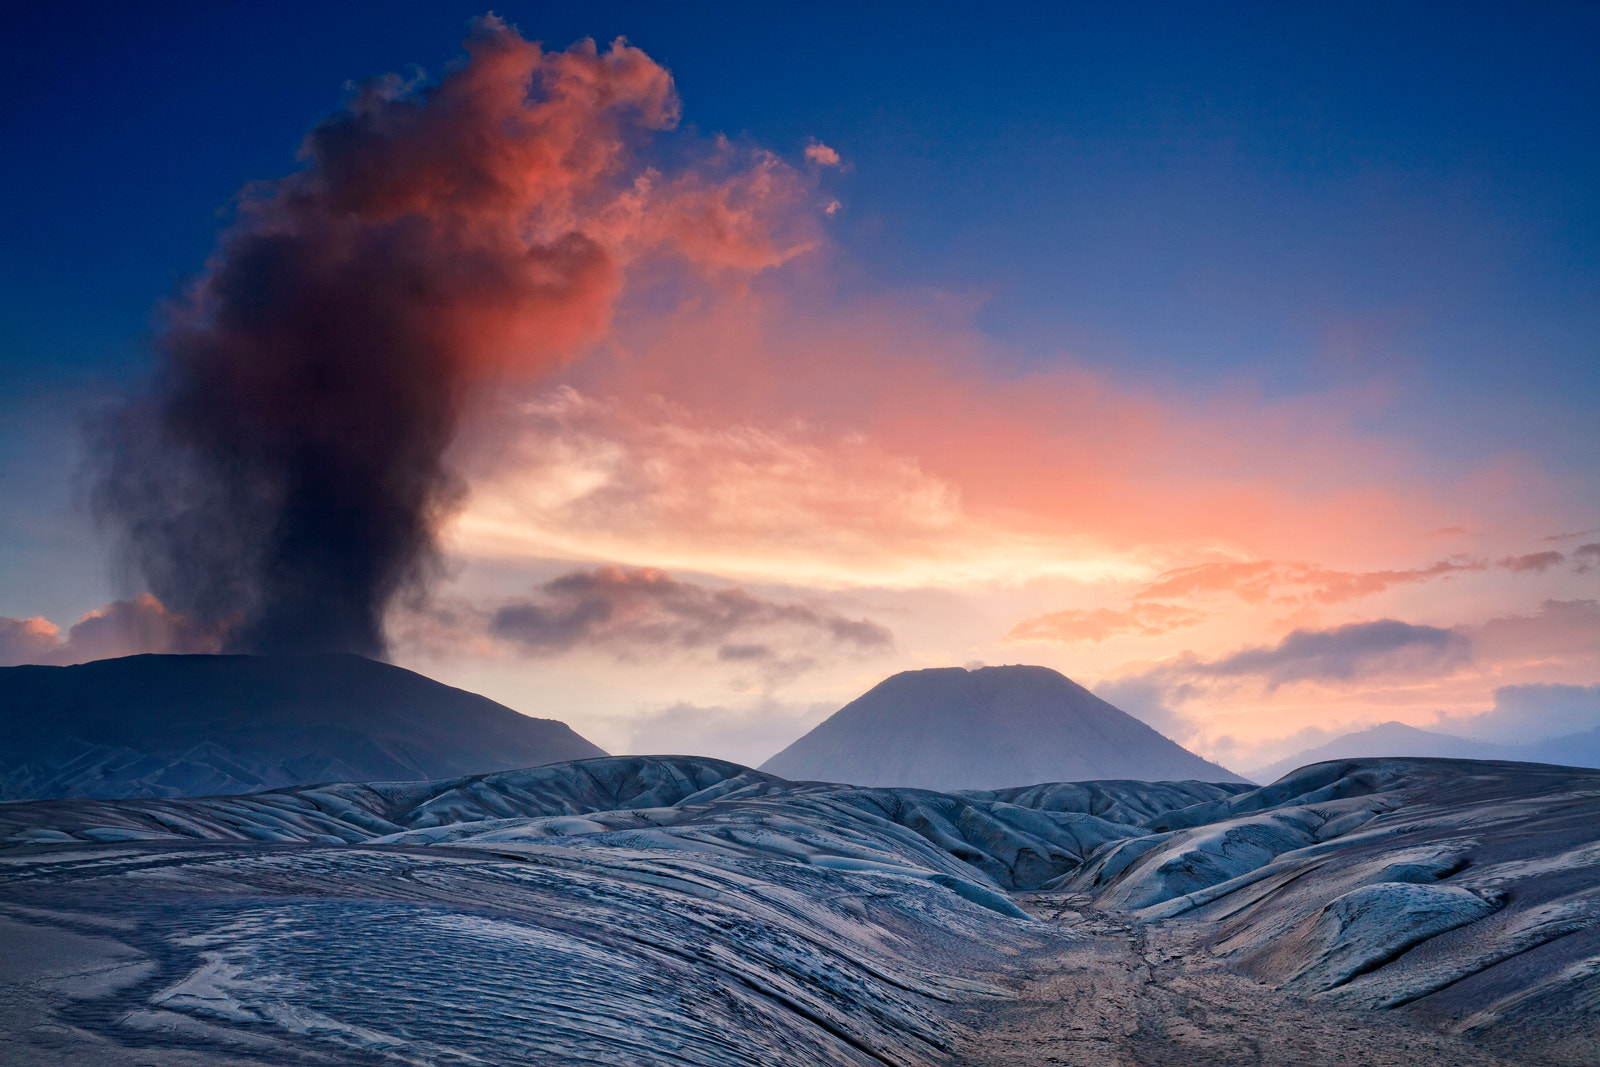 Photograph Mount Bromo Sunset by Helminadia Ranford on 500px